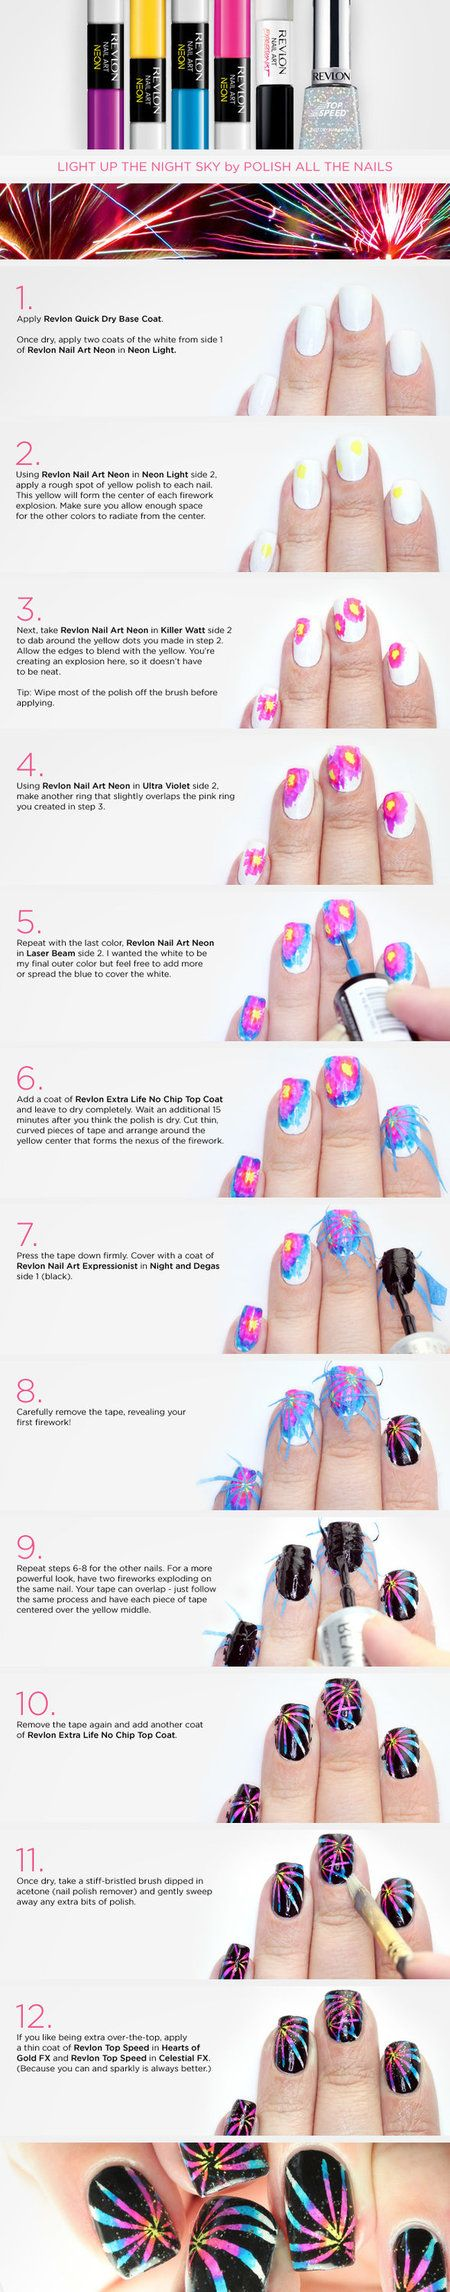 535 best Nail Inspiration images on Pinterest | Nail scissors, Nail ...